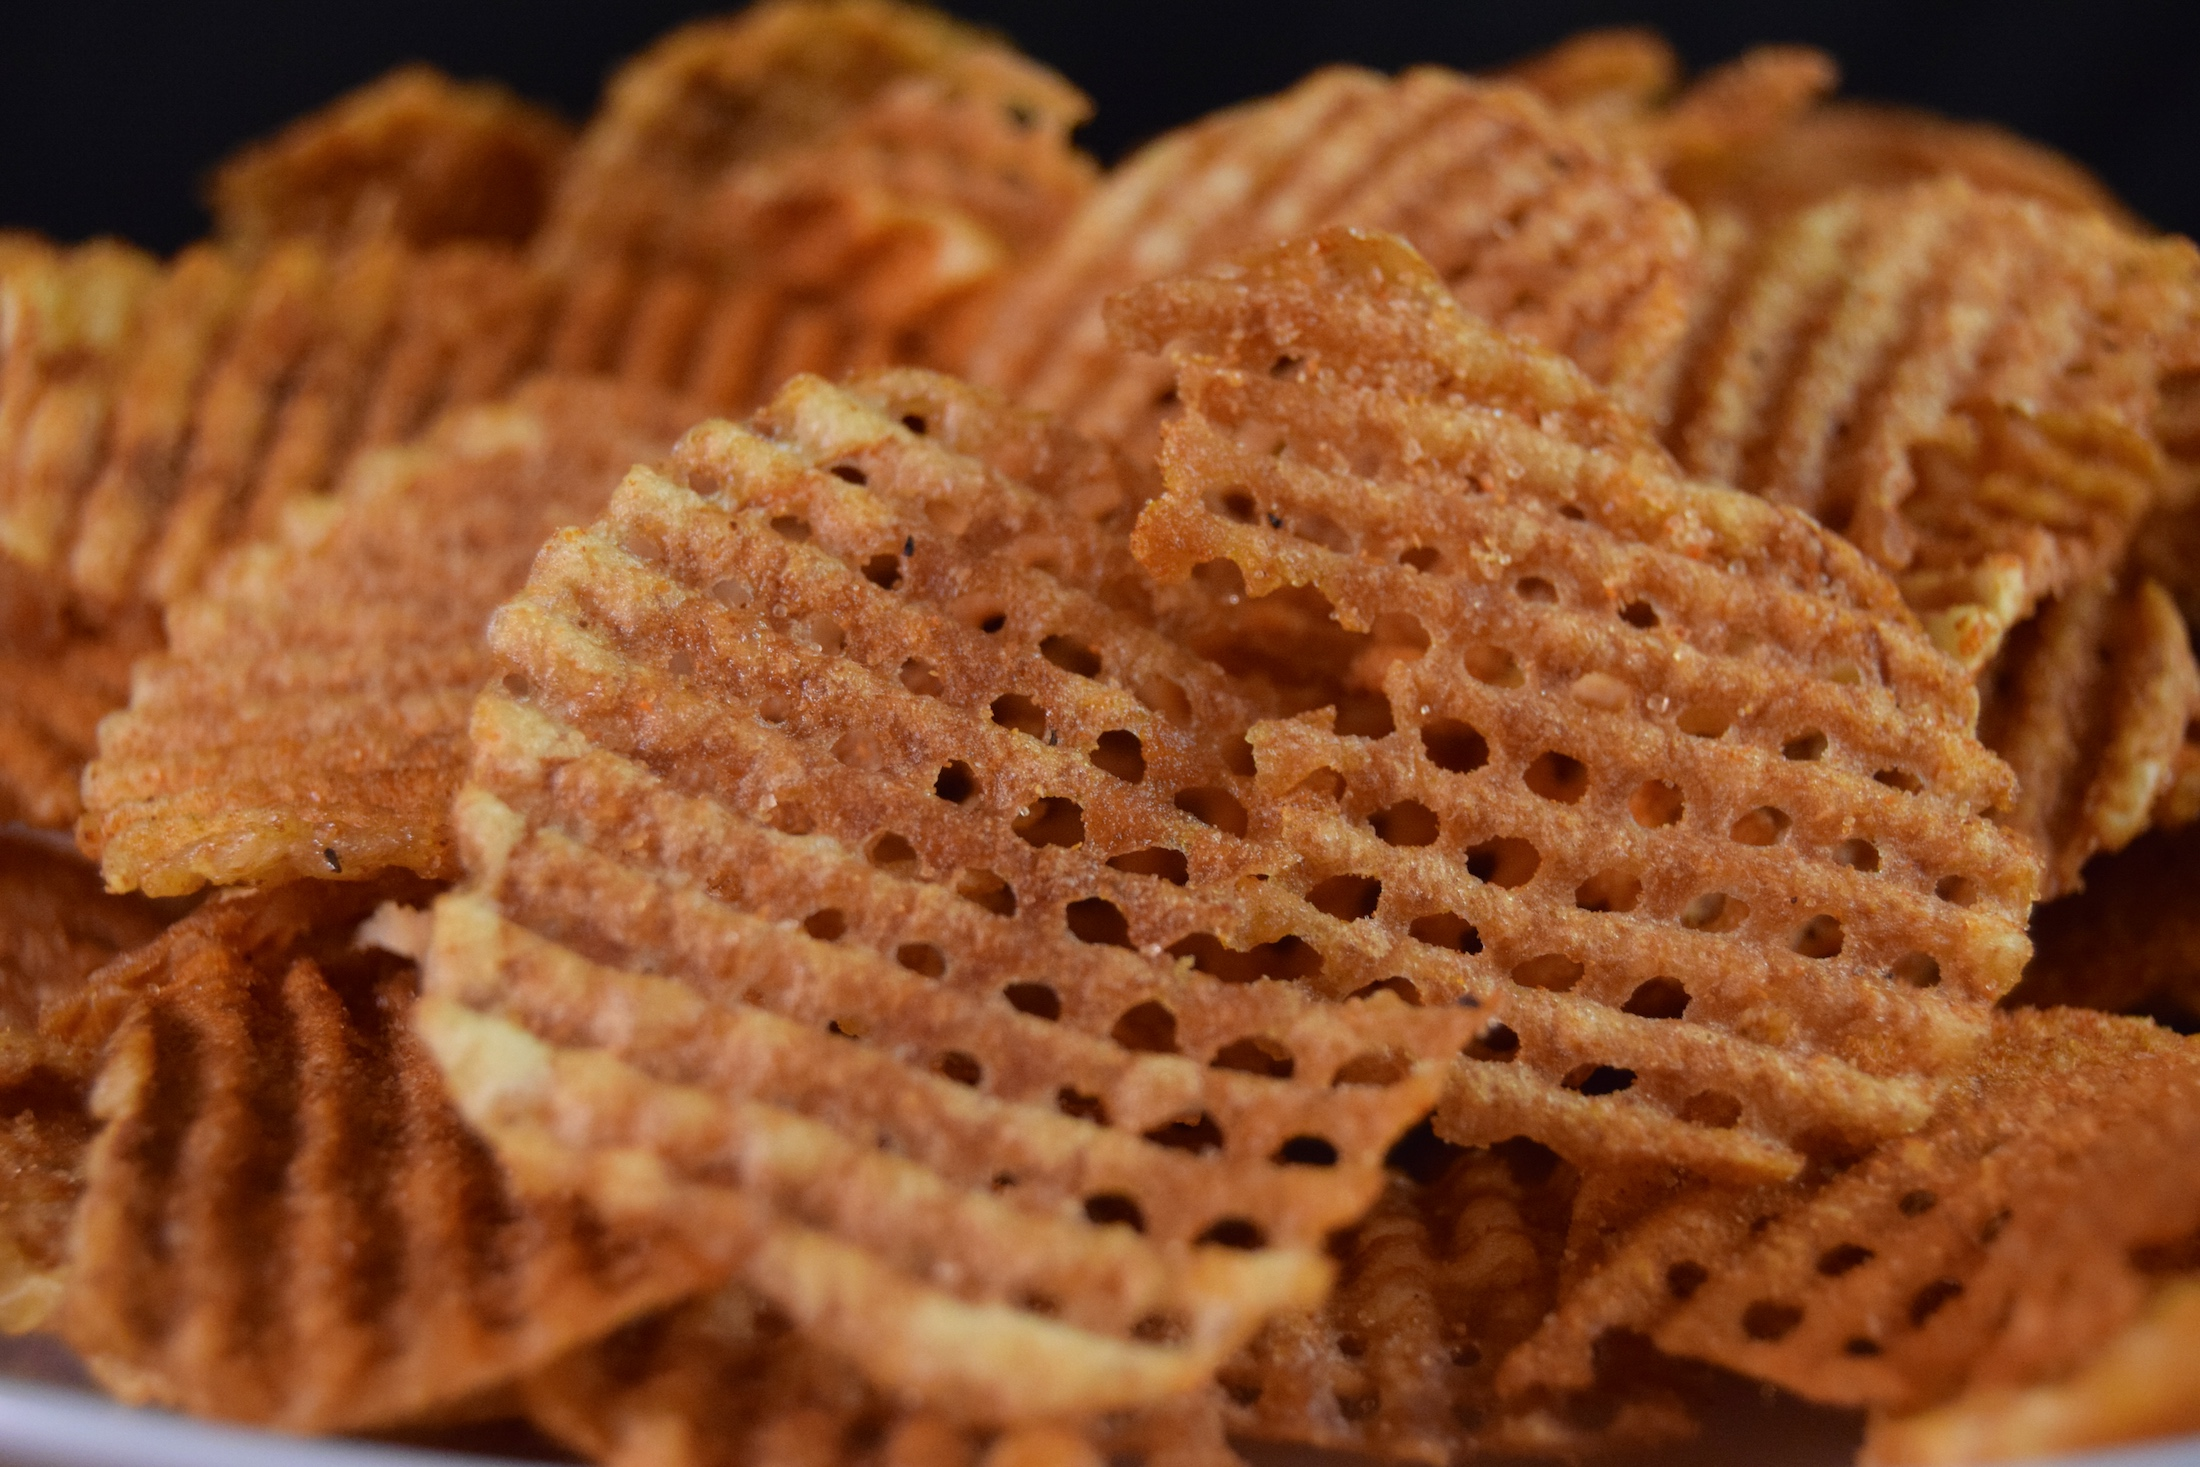 How To Make Waffle Fries And Chips